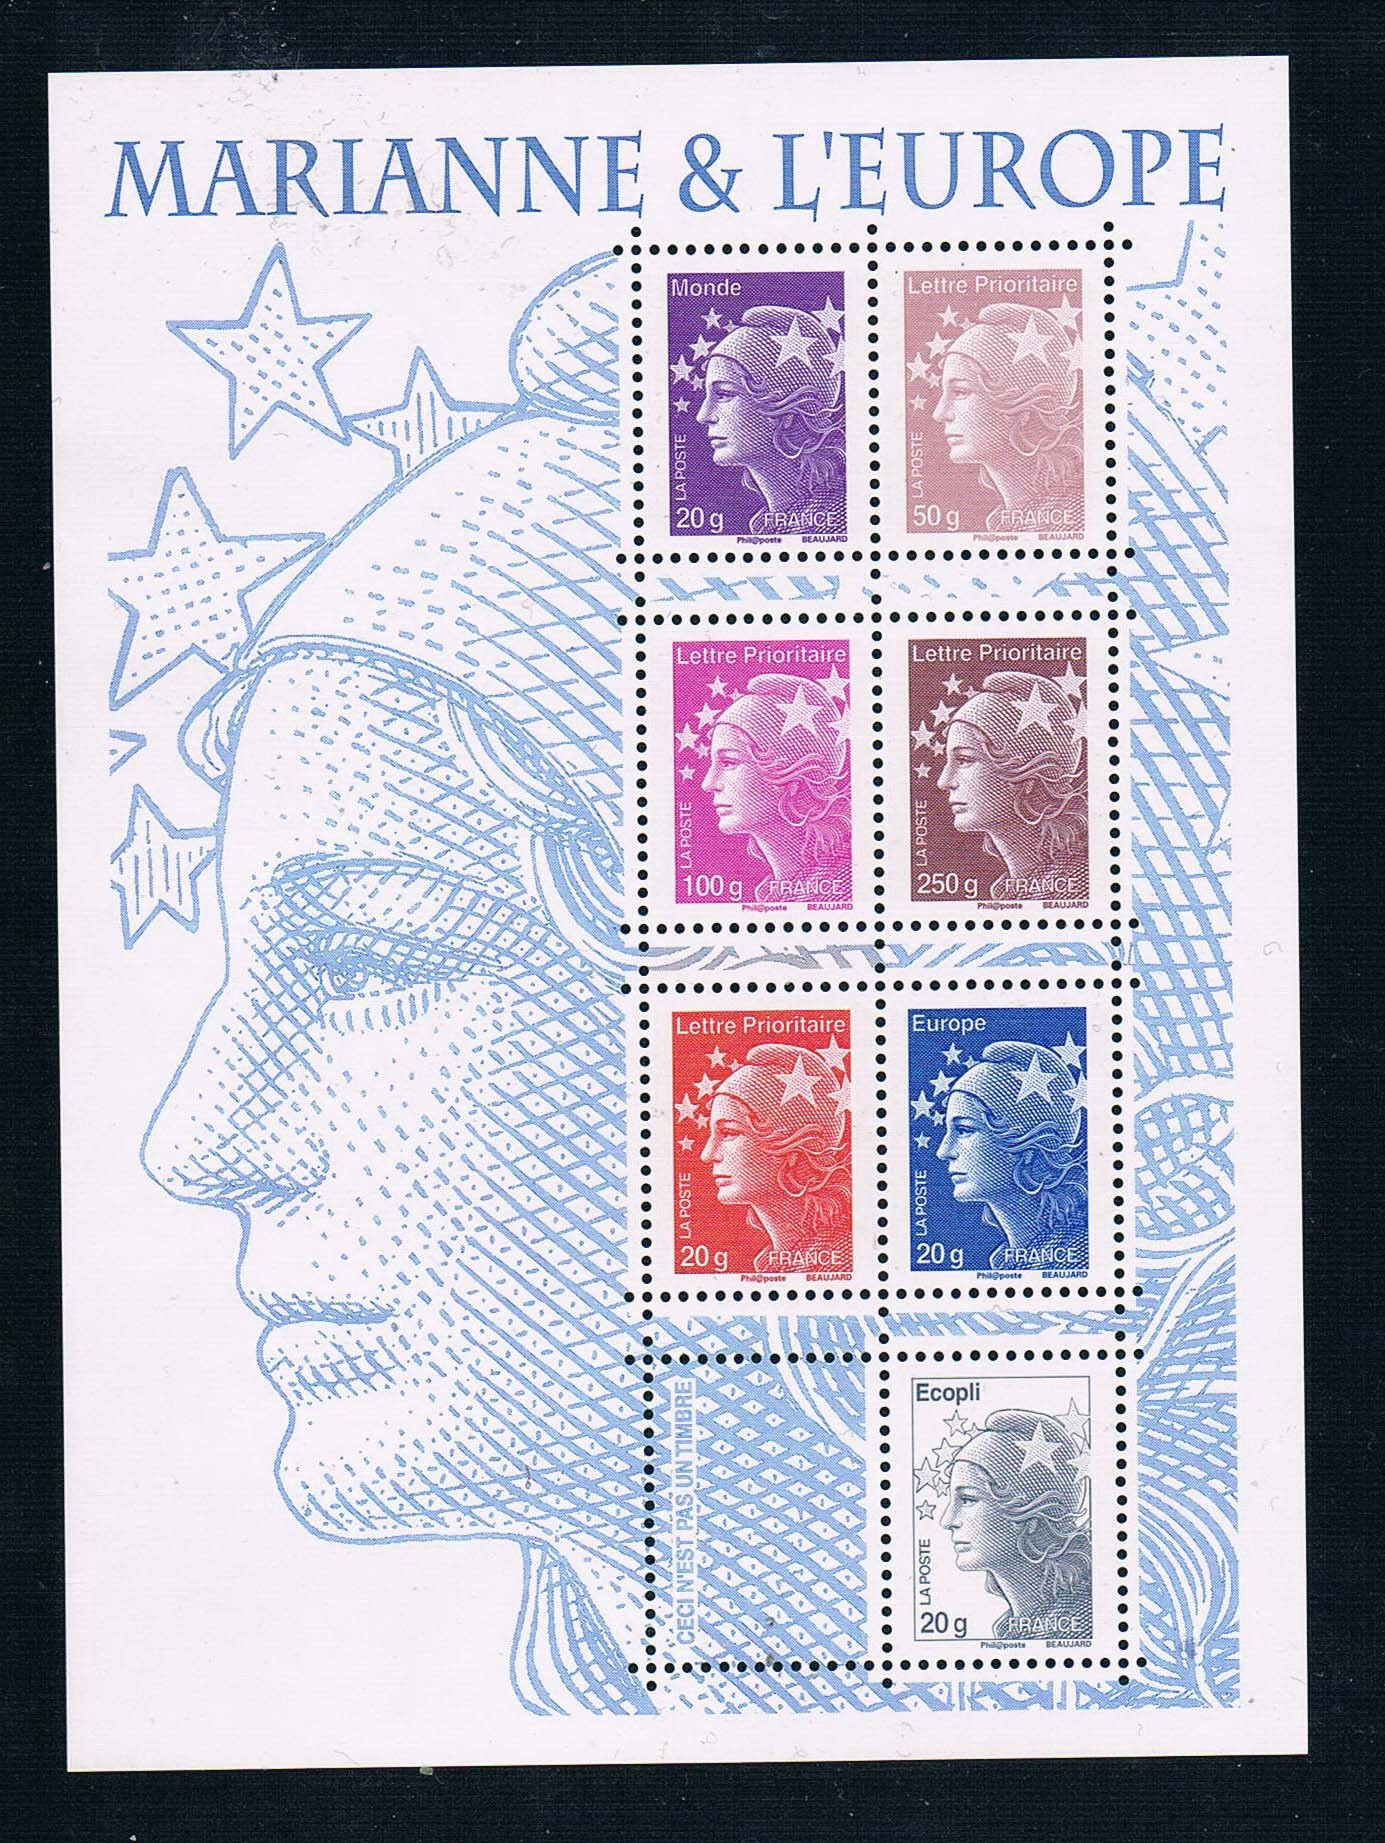 FR0831 France 2011 New postage Maria goddess stamp 1MS new 0320 поло print bar книга джунглей